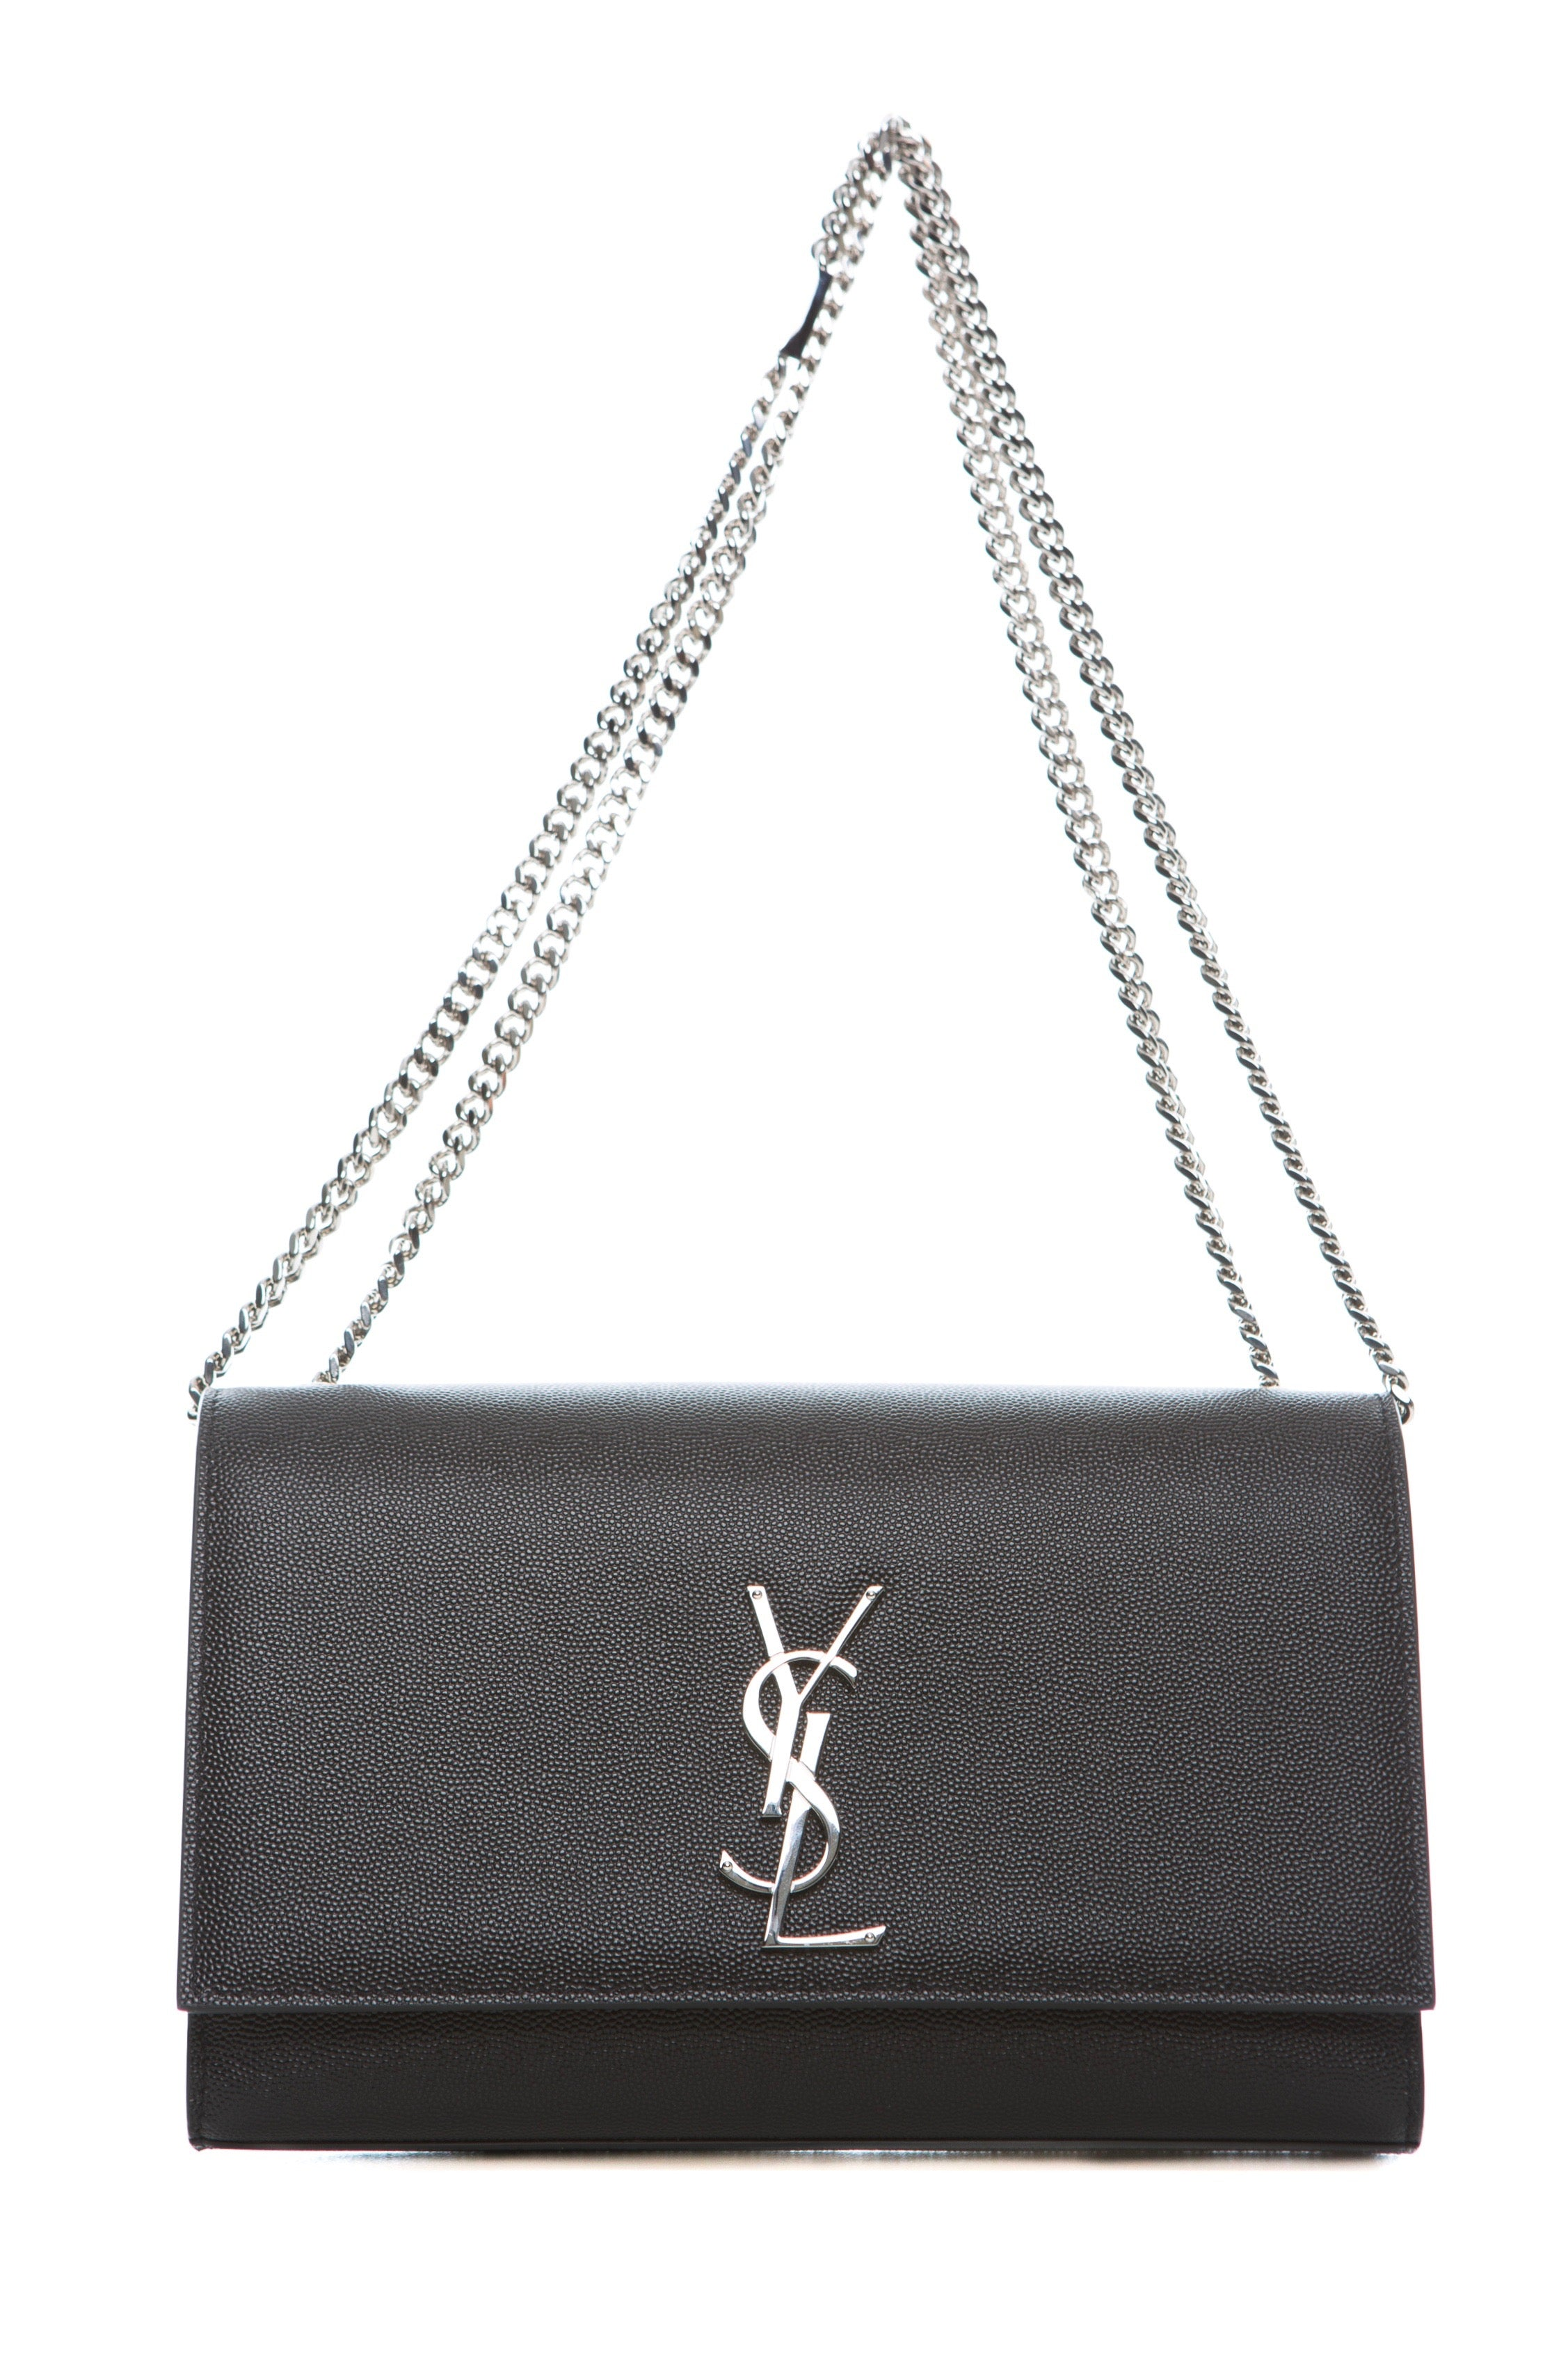 Black Medium Wallet Shoulder Bag Saint Laurent Very Cheap Get New Affordable Online YdrjcxLKCn